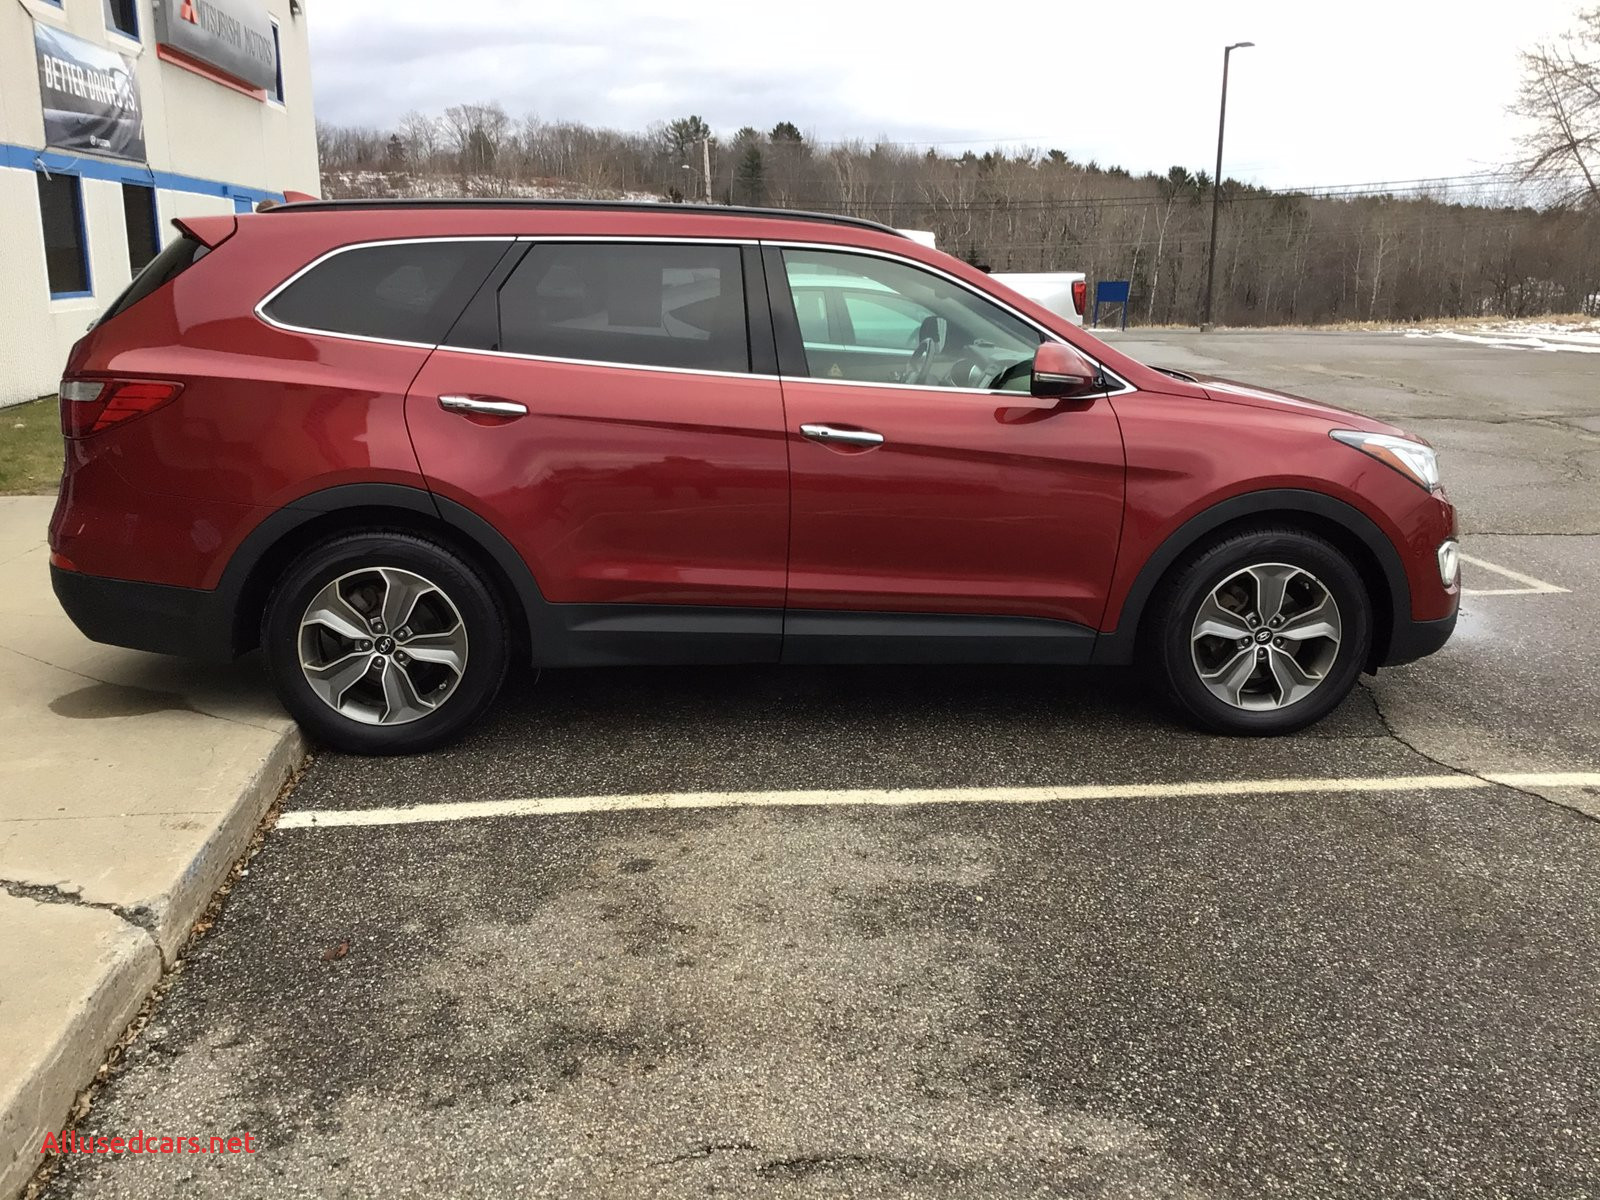 Used Cars for Sale $8000 or Less Luxury Used Cars Under $15 000 for Sale In Bangor Me